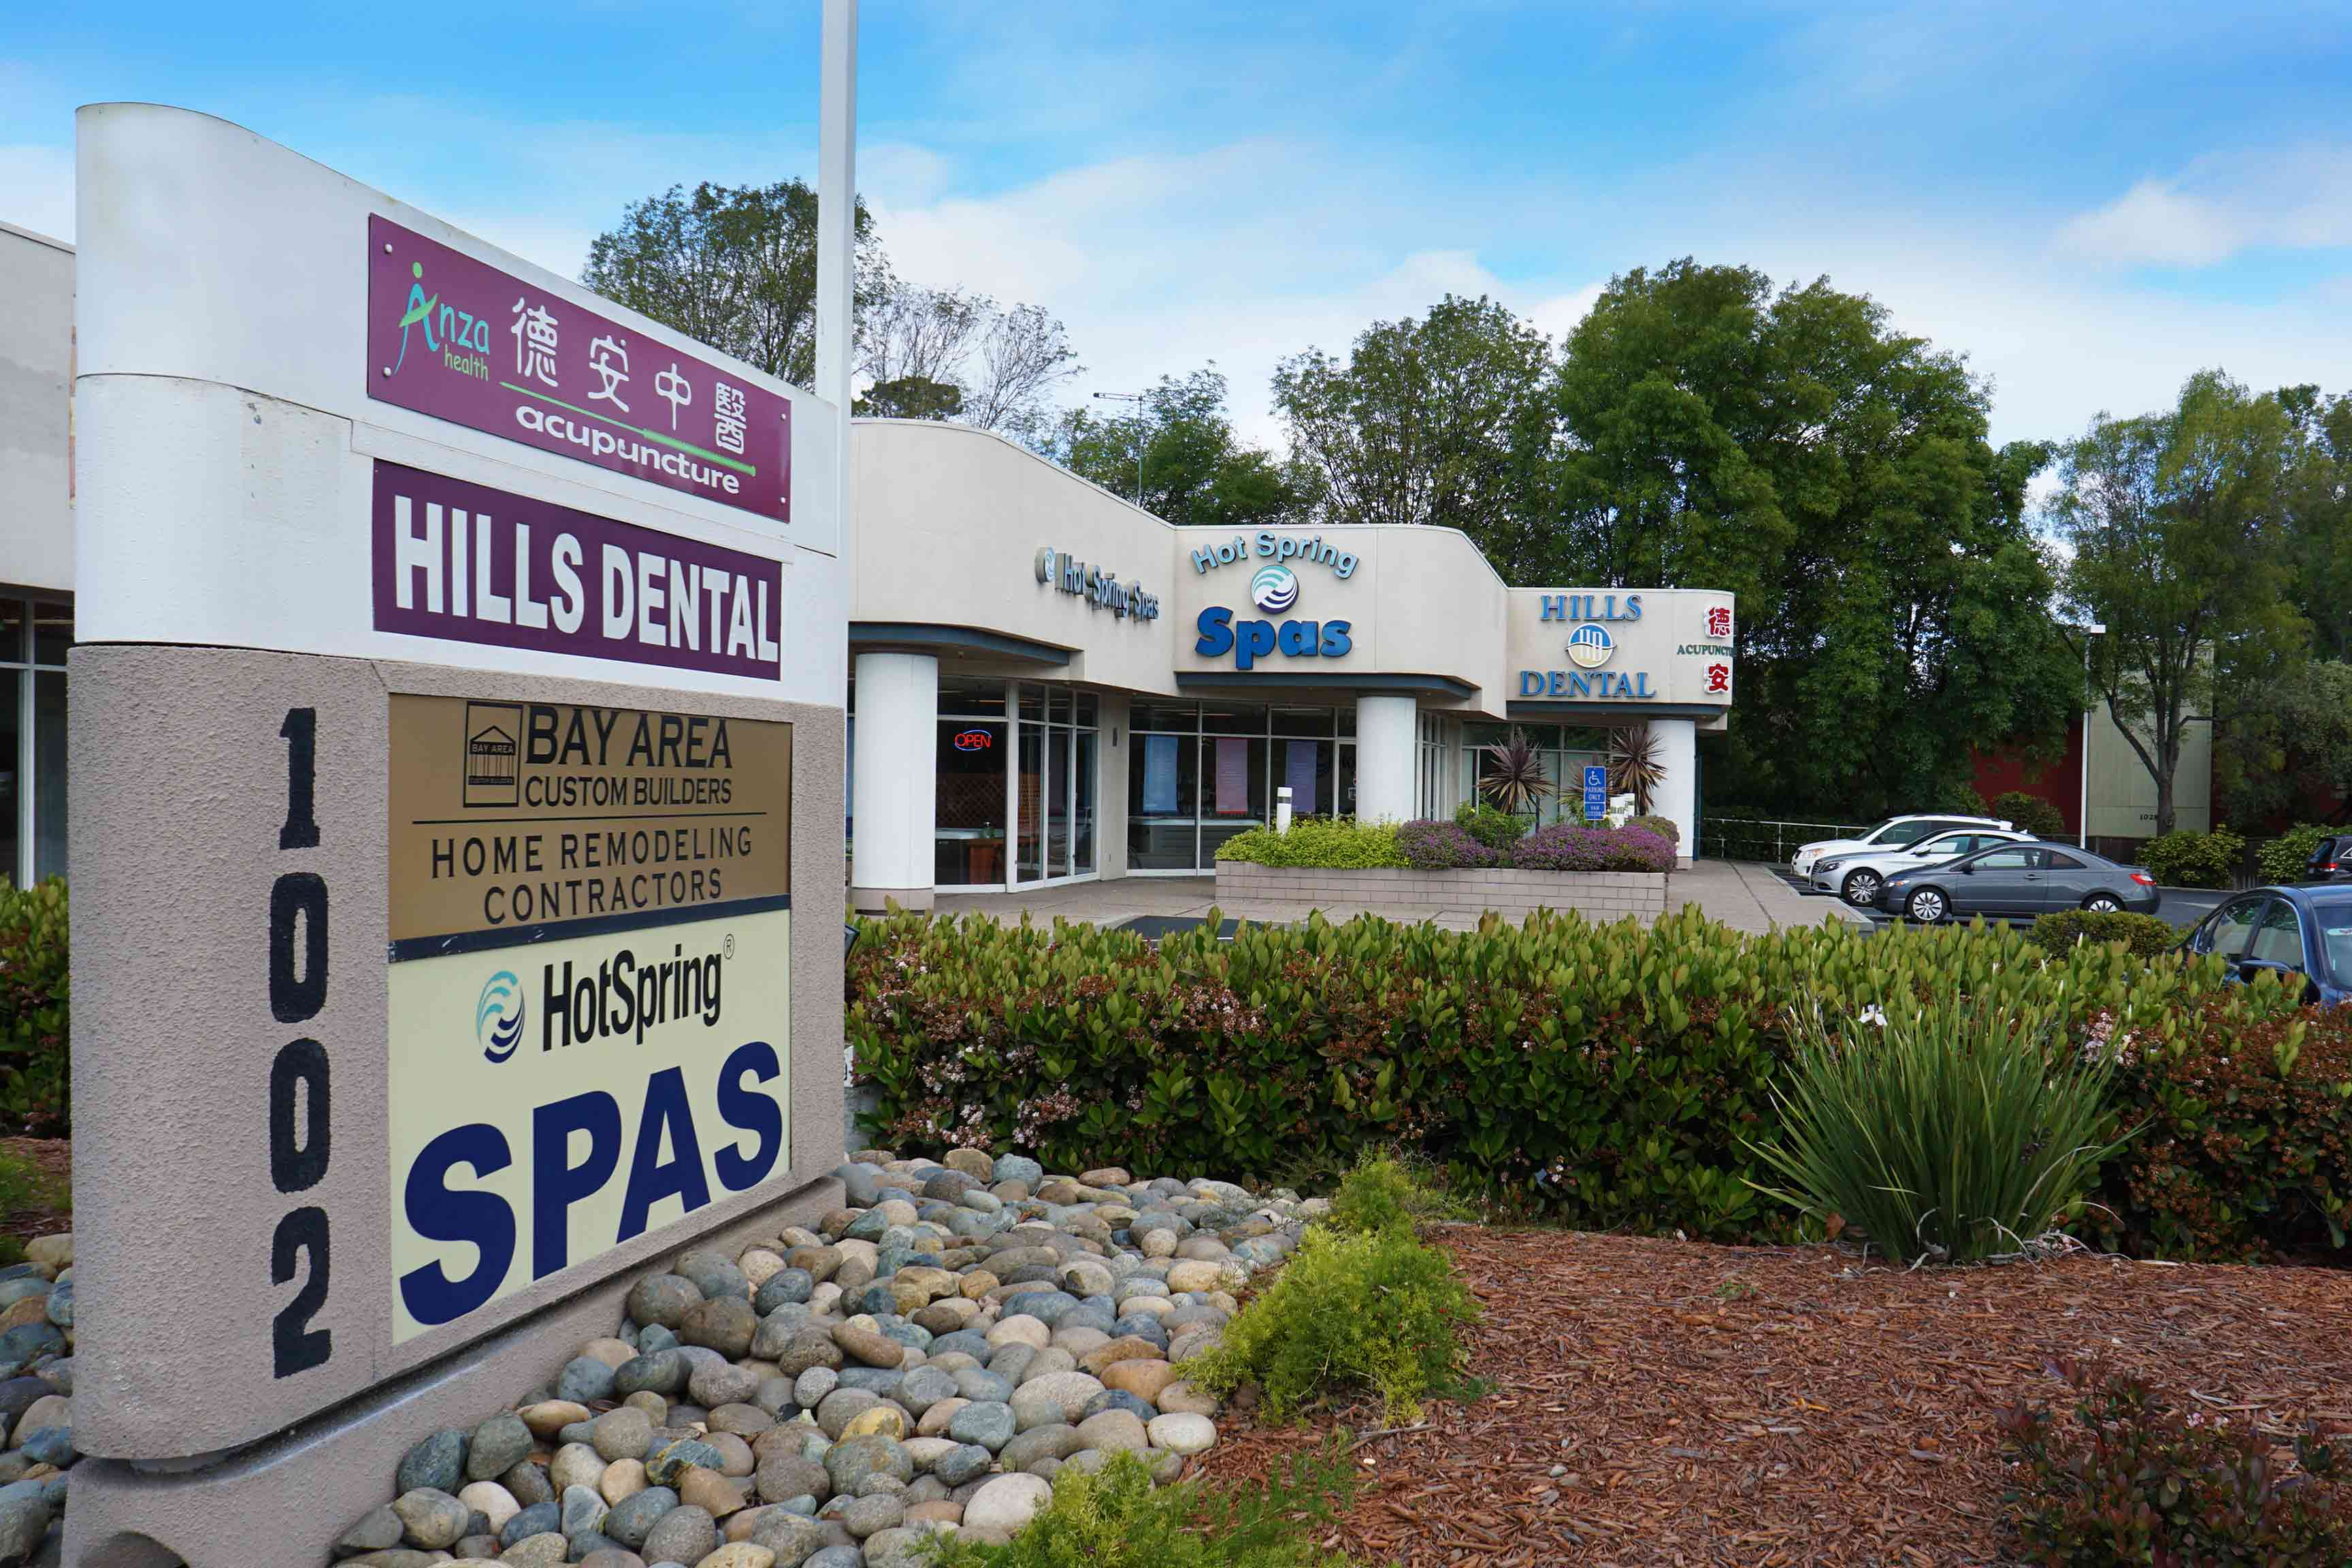 Hills Dental - Doctor Dentist in San Jose, United States - 95129